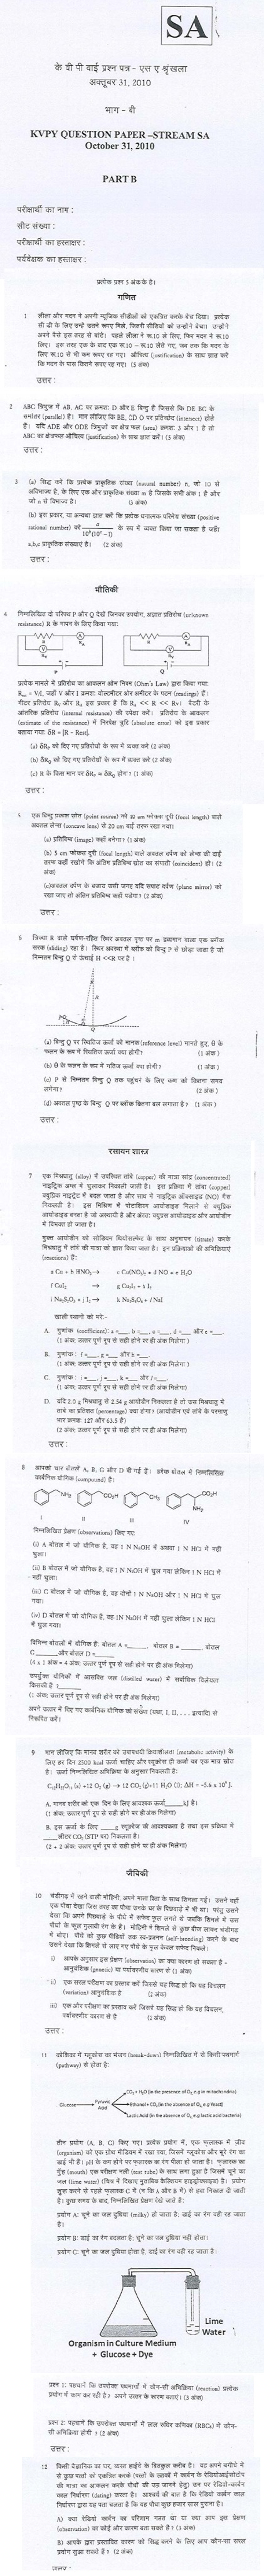 KVPY 2010 SA Part B Question Papers (Hindi Version)